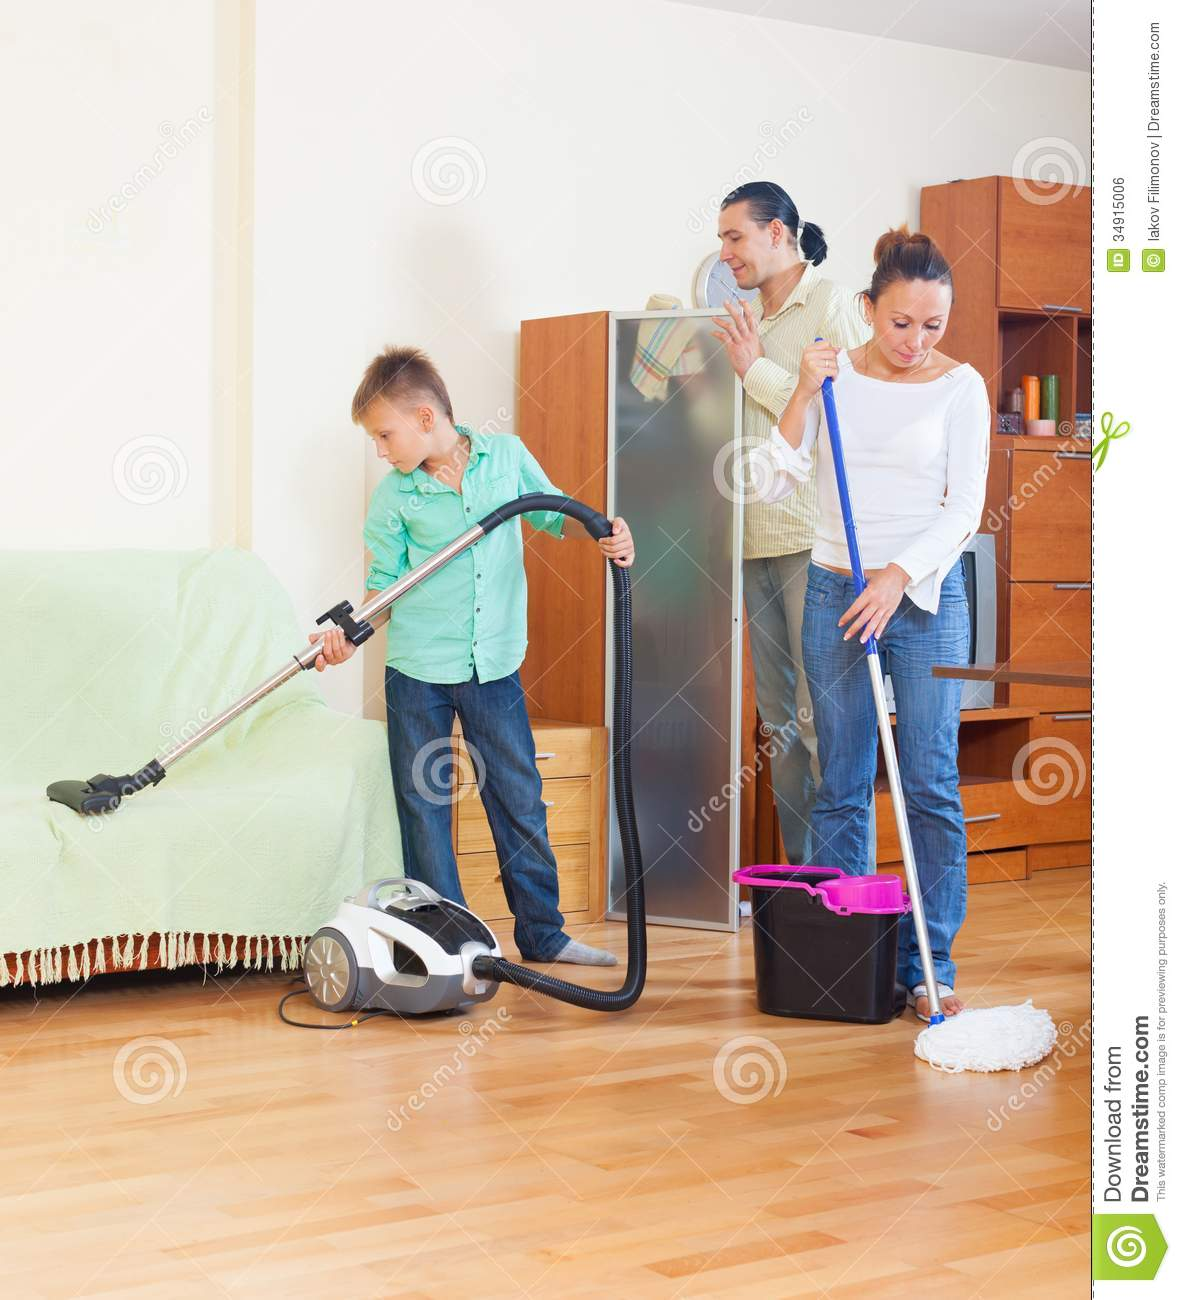 Cleaning The House family doing house cleaning royalty free stock image - image: 34915006